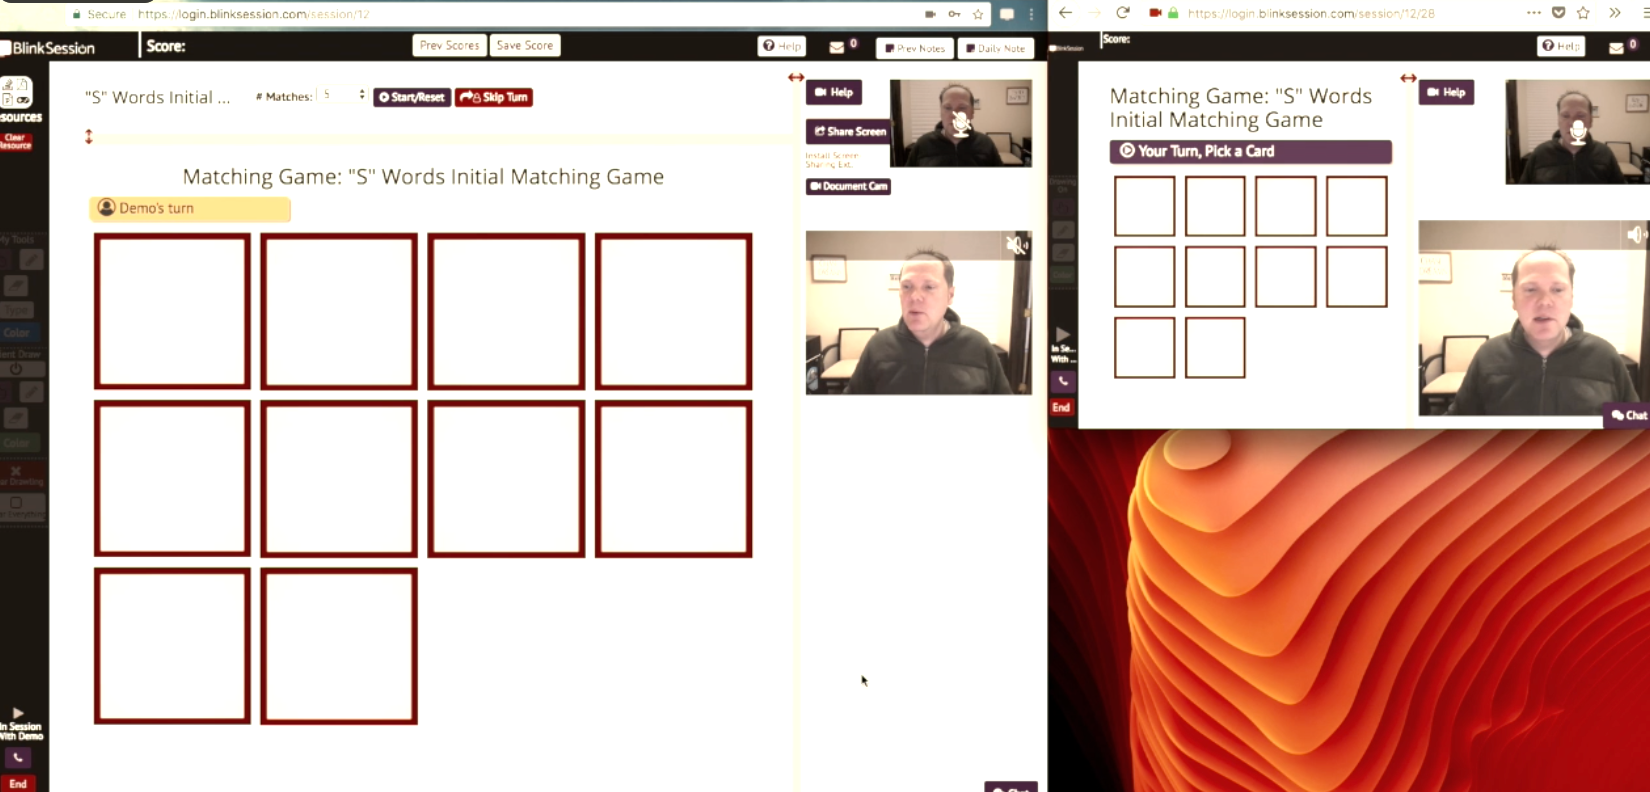 Games and other content can be used within sessions to facilitate interaction